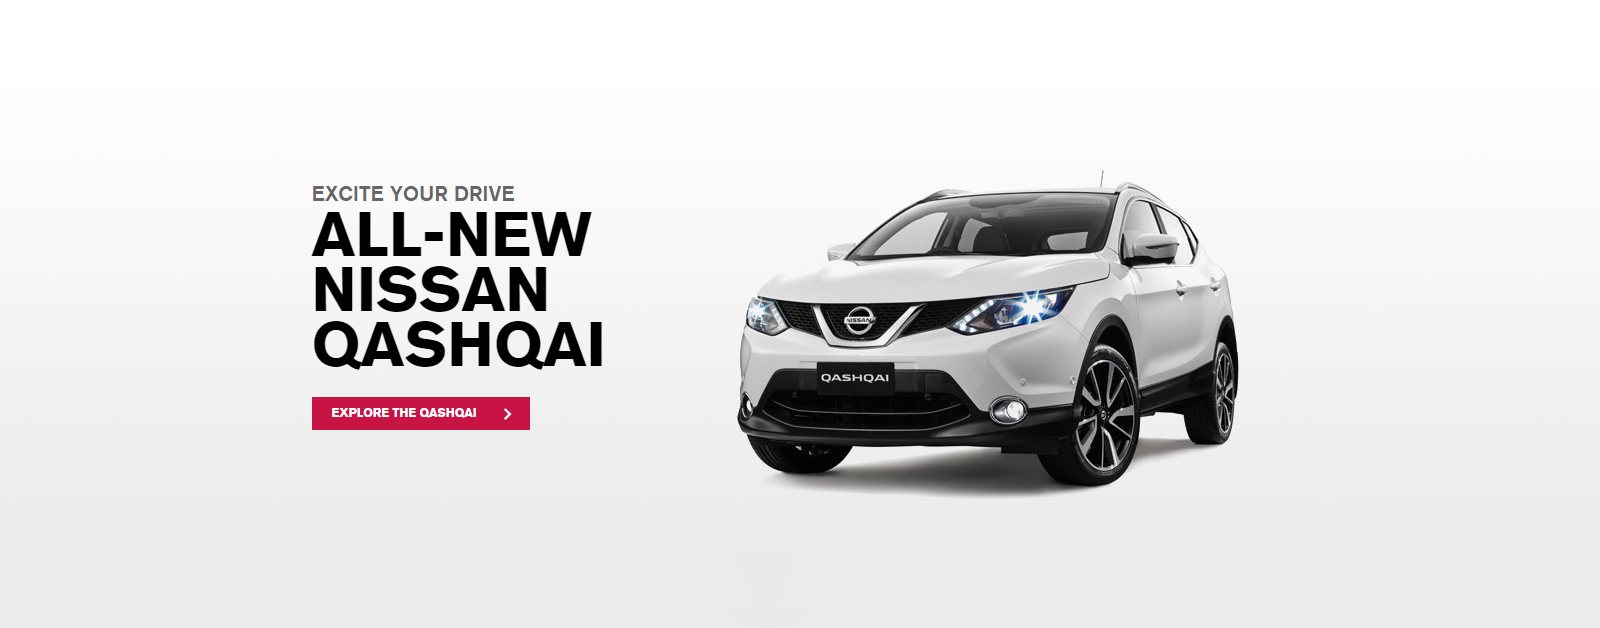 Excite your drive with the all-new Nissan Qashqai at Metro Nissan in Brisbane.